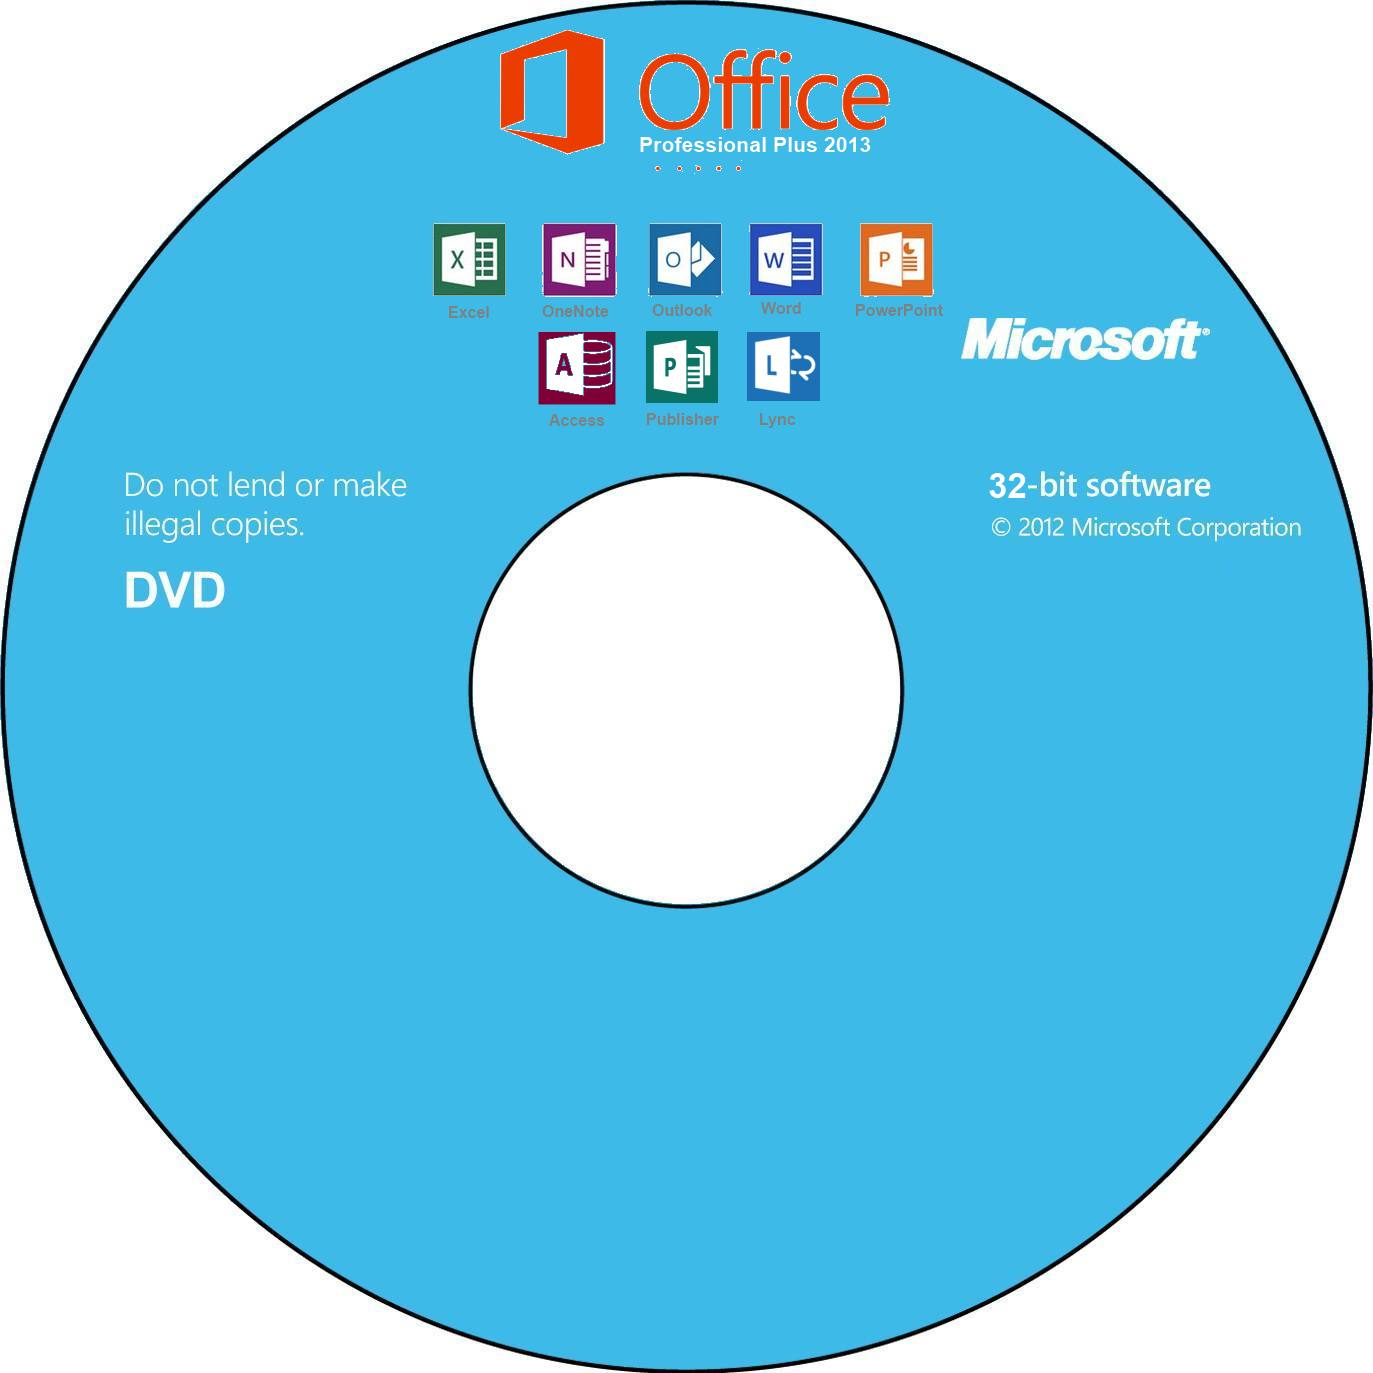 Freedom office 2013 pro plus freeeeee download - Upgrade office 2013 home and business to professional ...